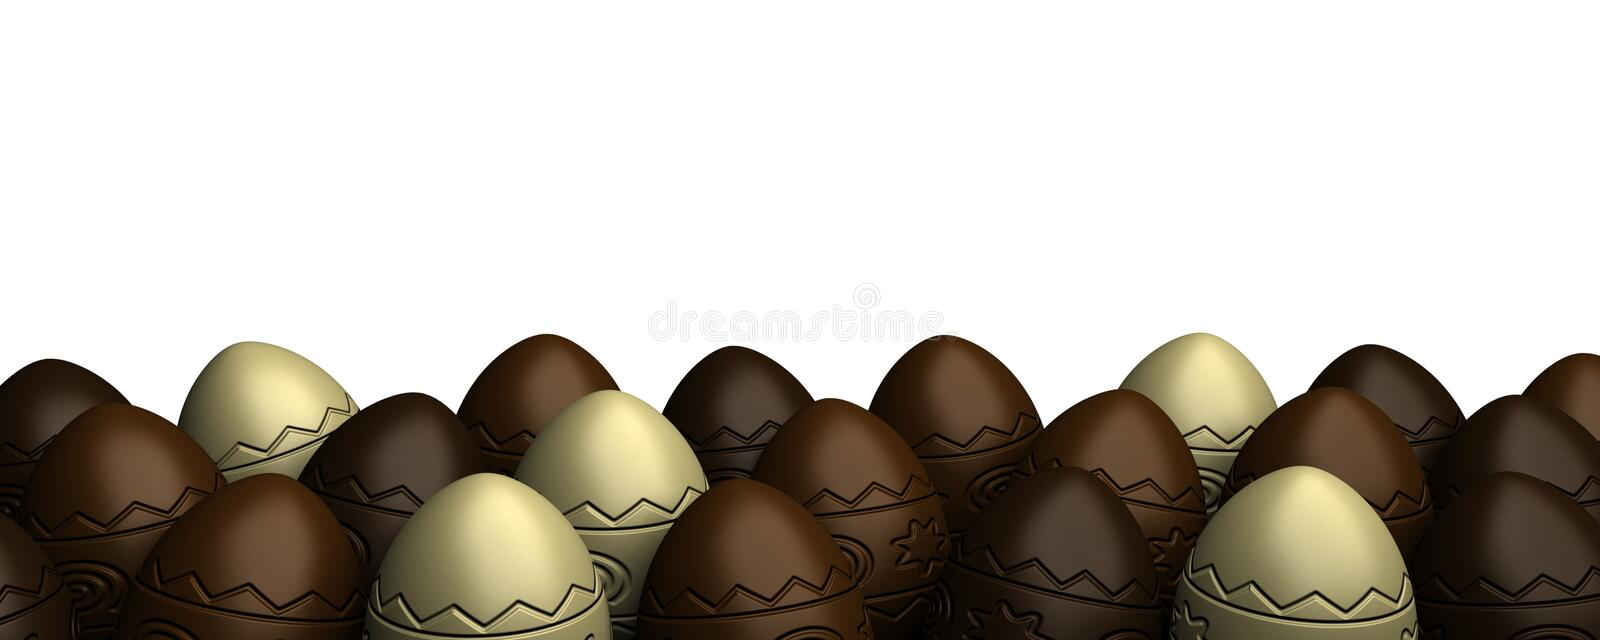 Rows of chocolate easter eggs stock illustration